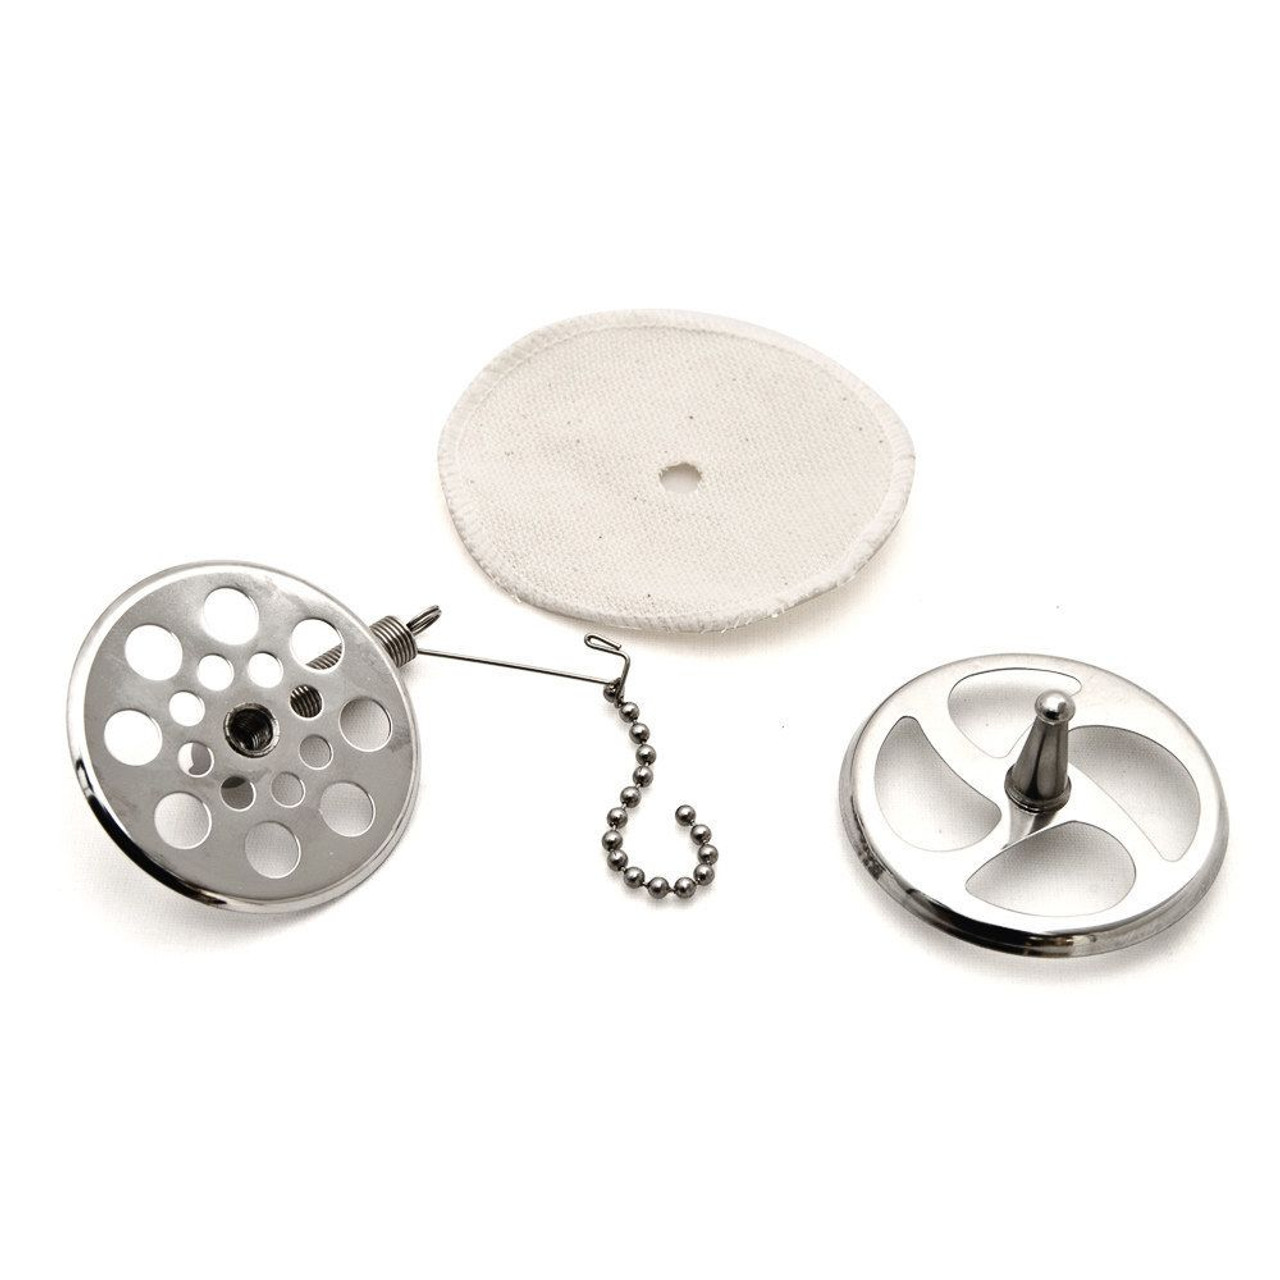 Yama Screen Assembly for 5 Cup Siphon